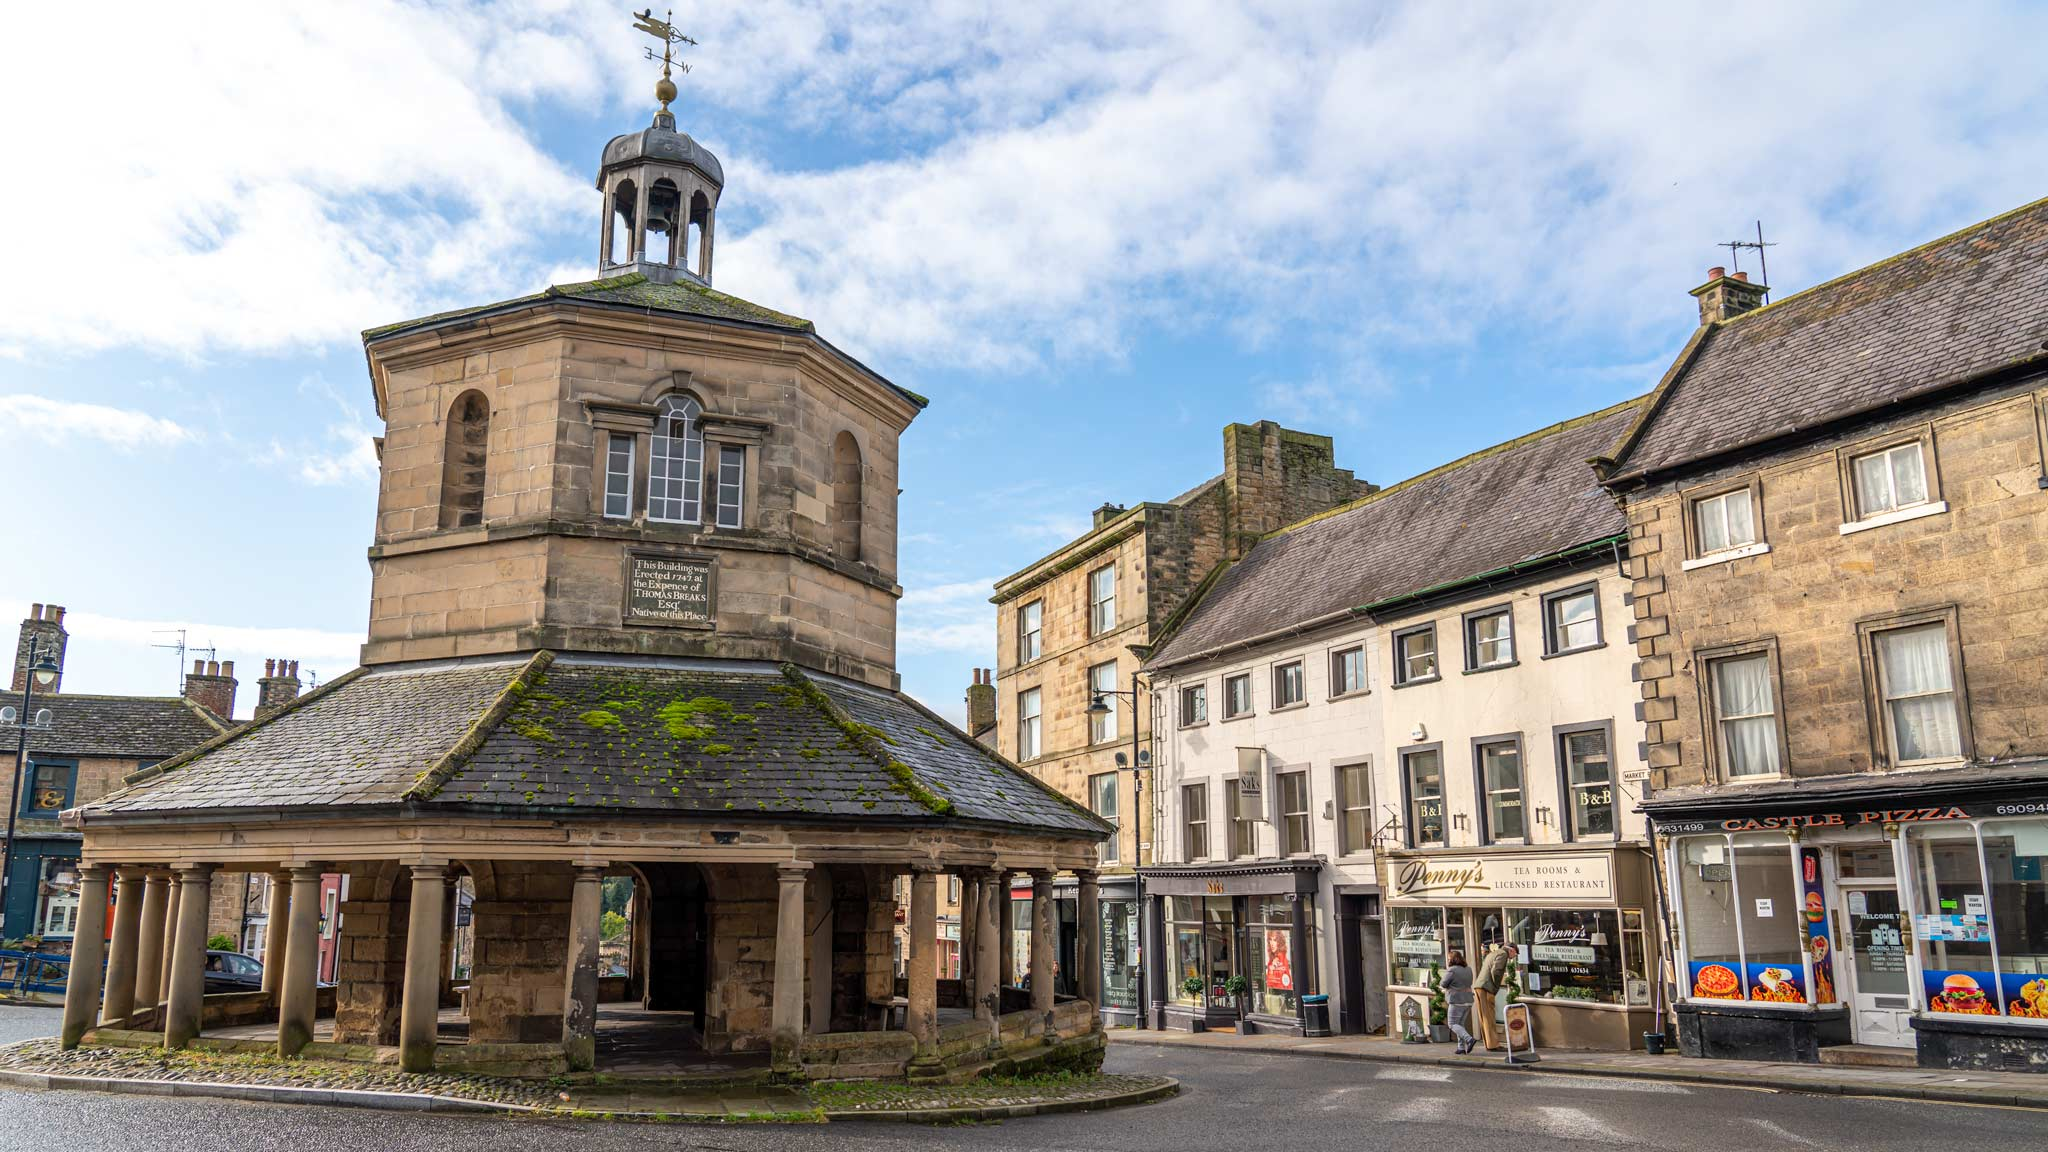 The market town of Barnard Castle